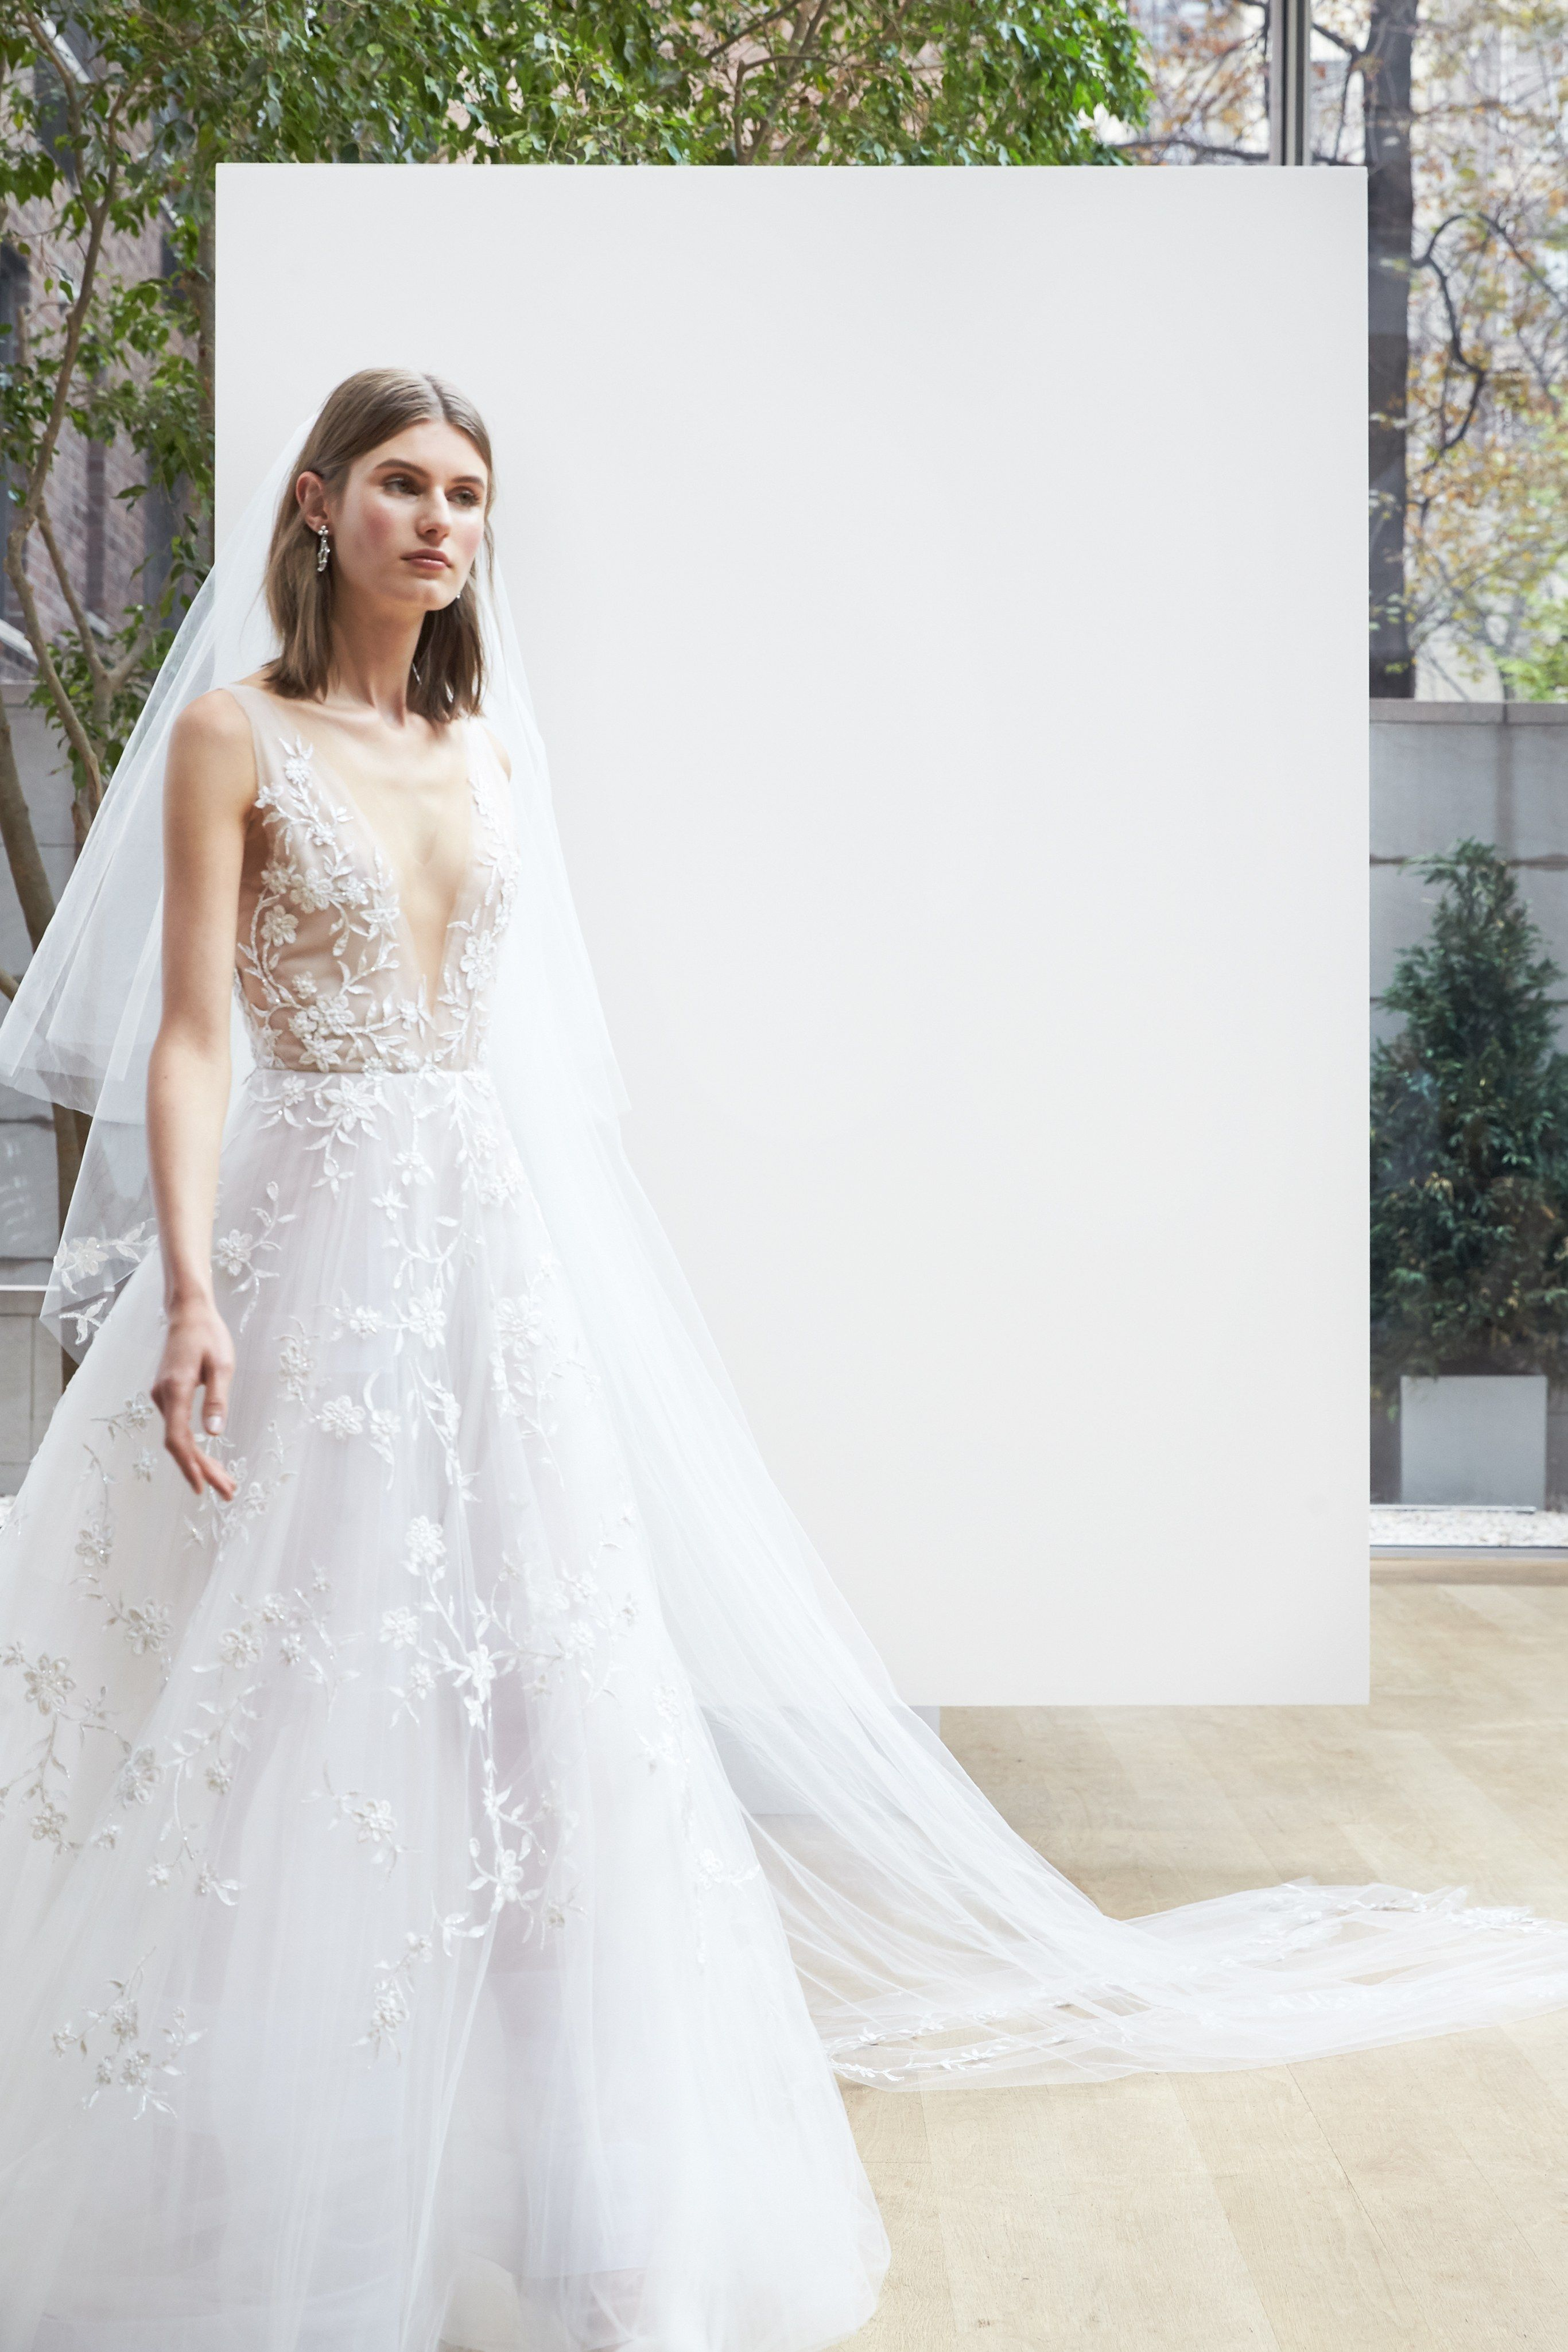 Oscar de la renta bridal u wedding dress collection spring